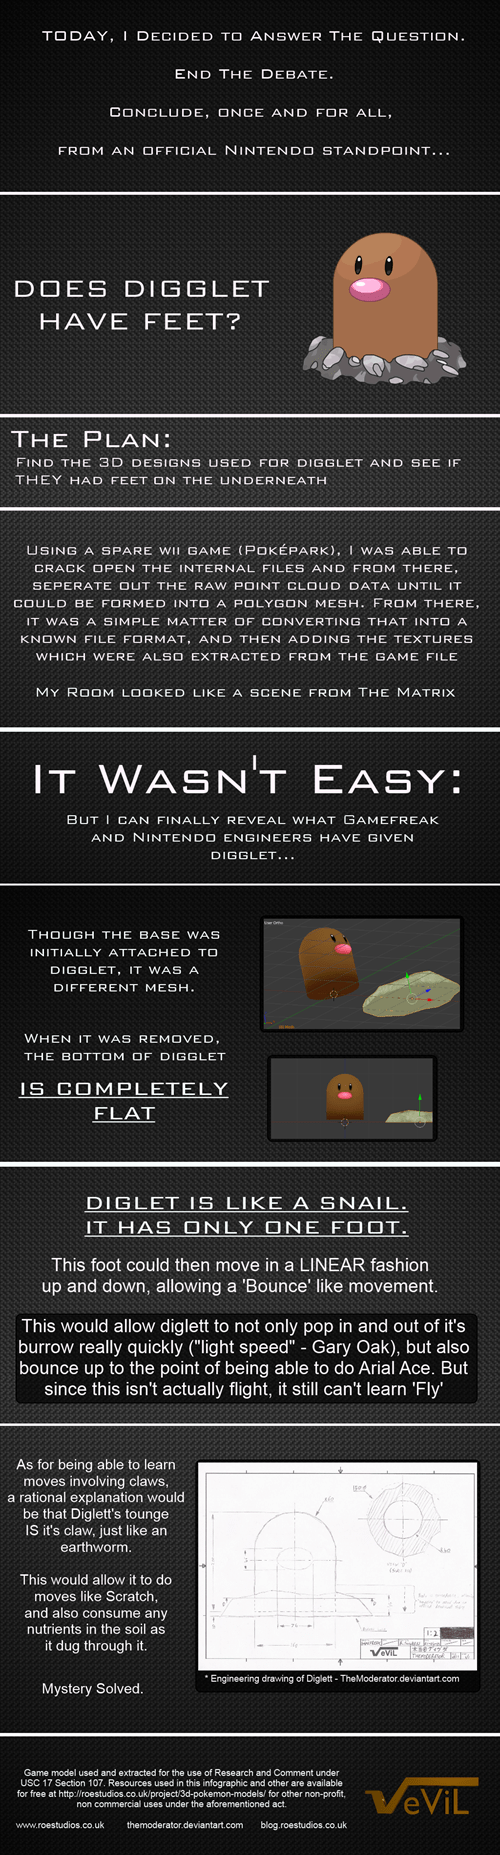 Diglett Wednesday: Conclusive Proof?